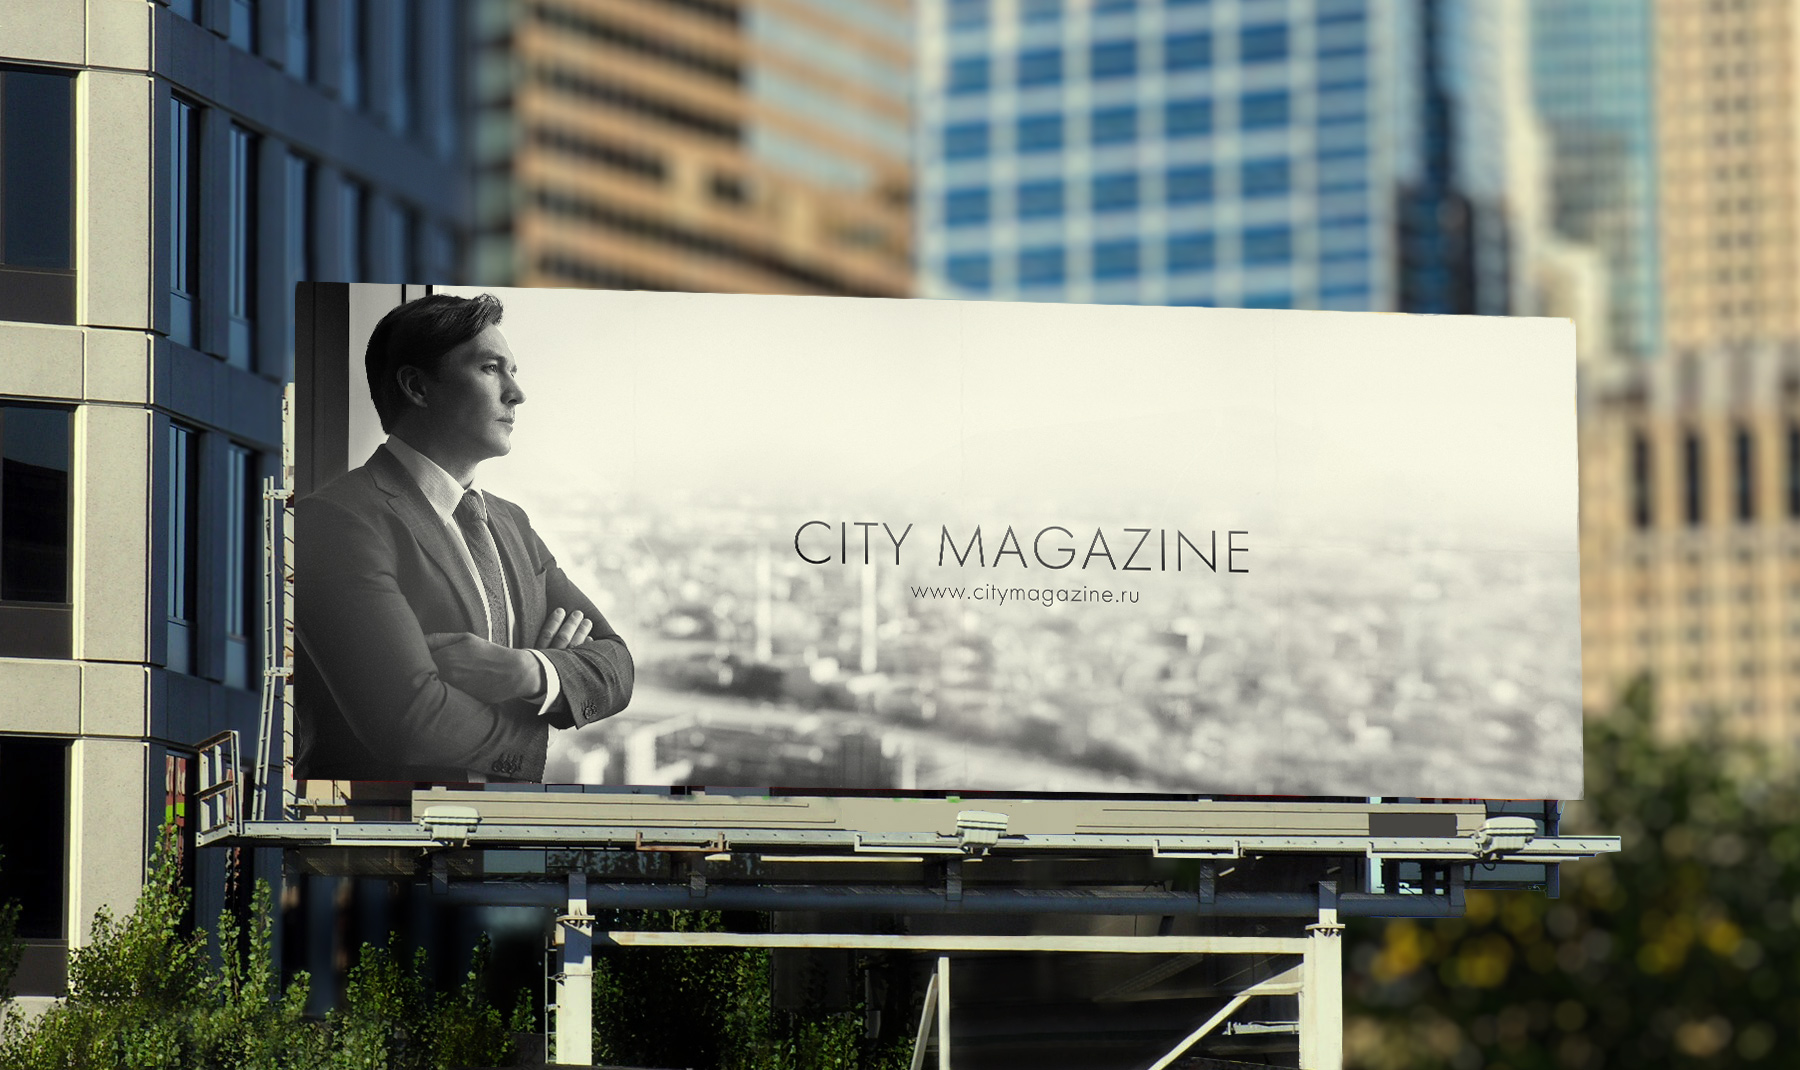 CITY MAGAZINE, Presentation & Promo | Alexander Sakulin - Professional Photographer